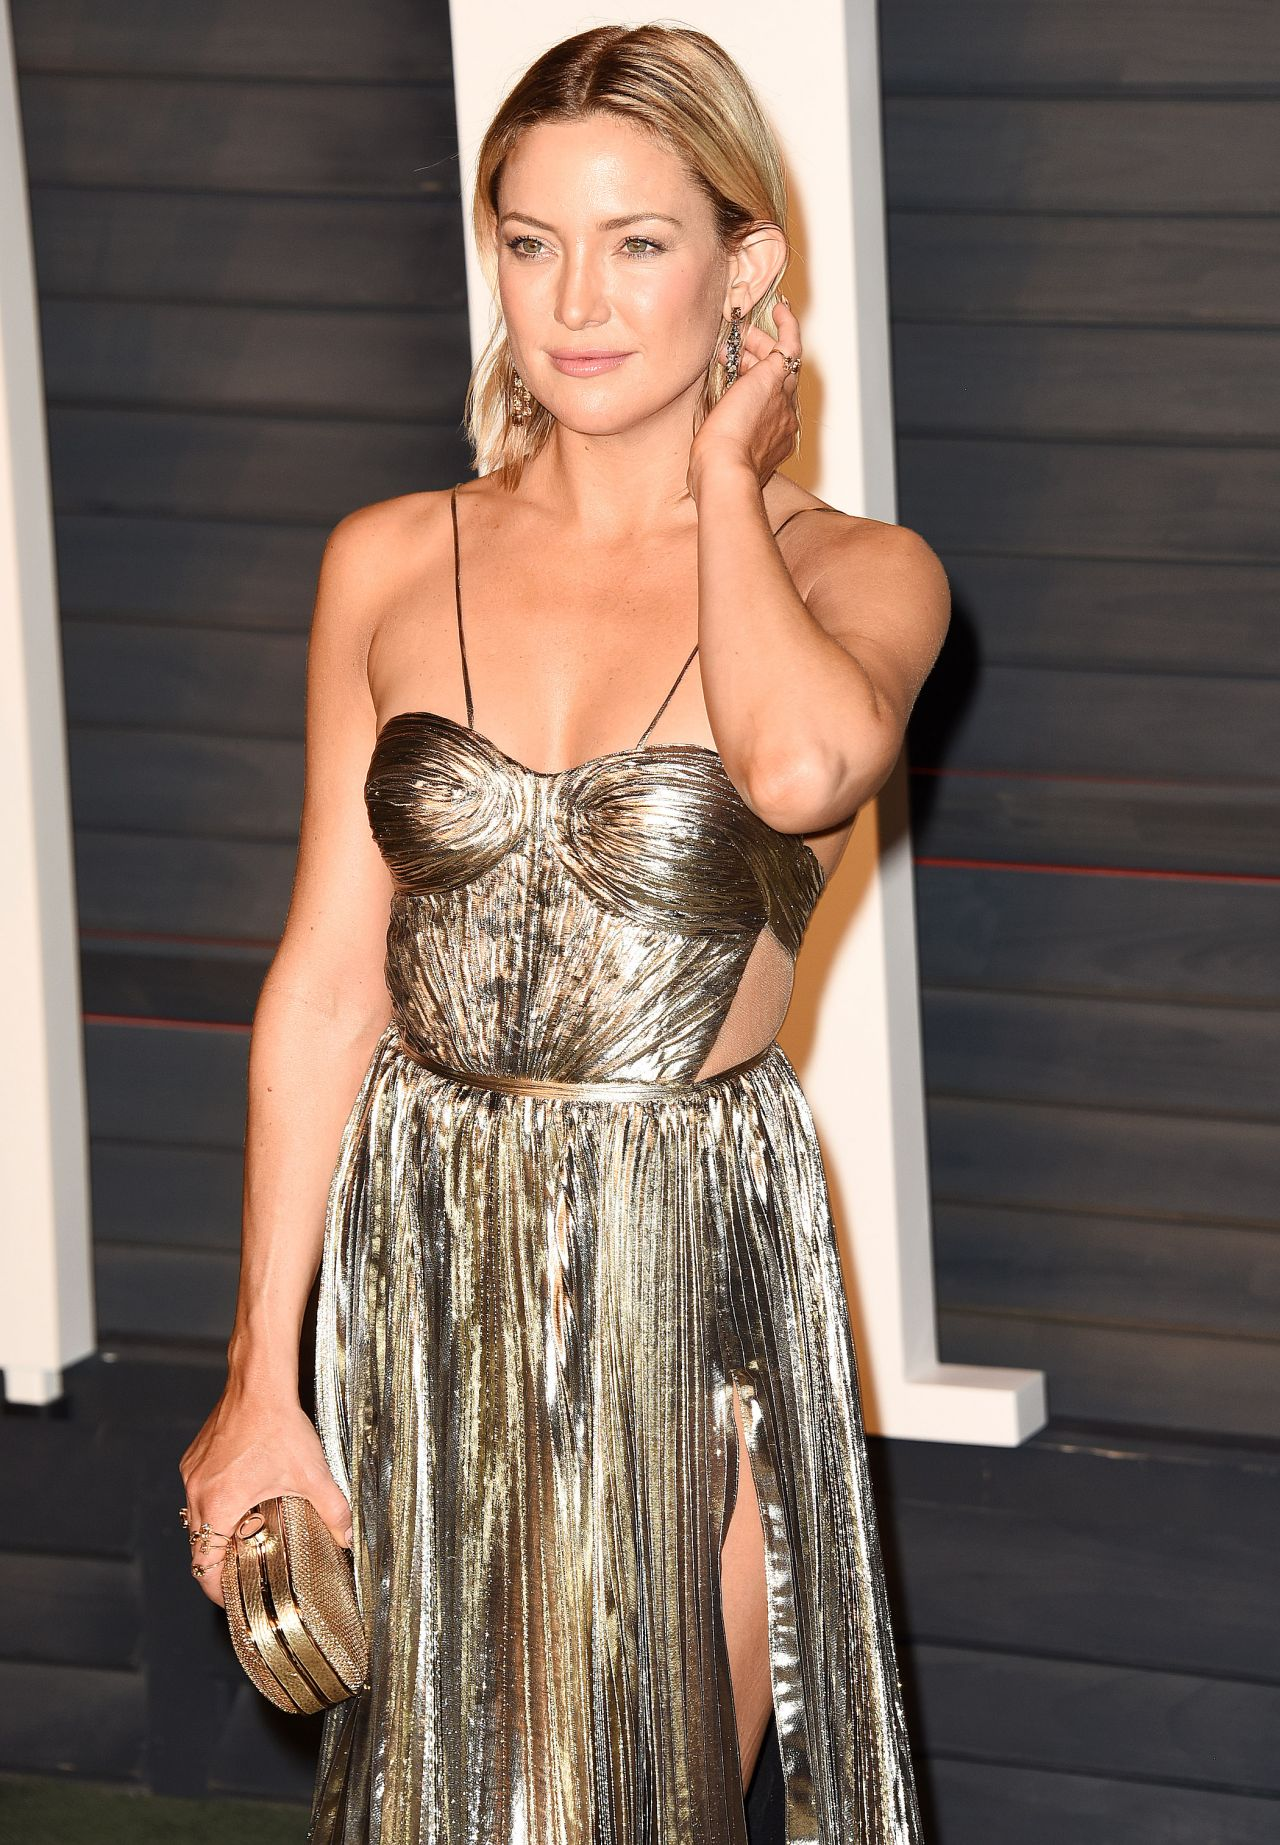 kate-hudson-vanity-fair-oscar-2016-party-in-beverly-hills-ca-10